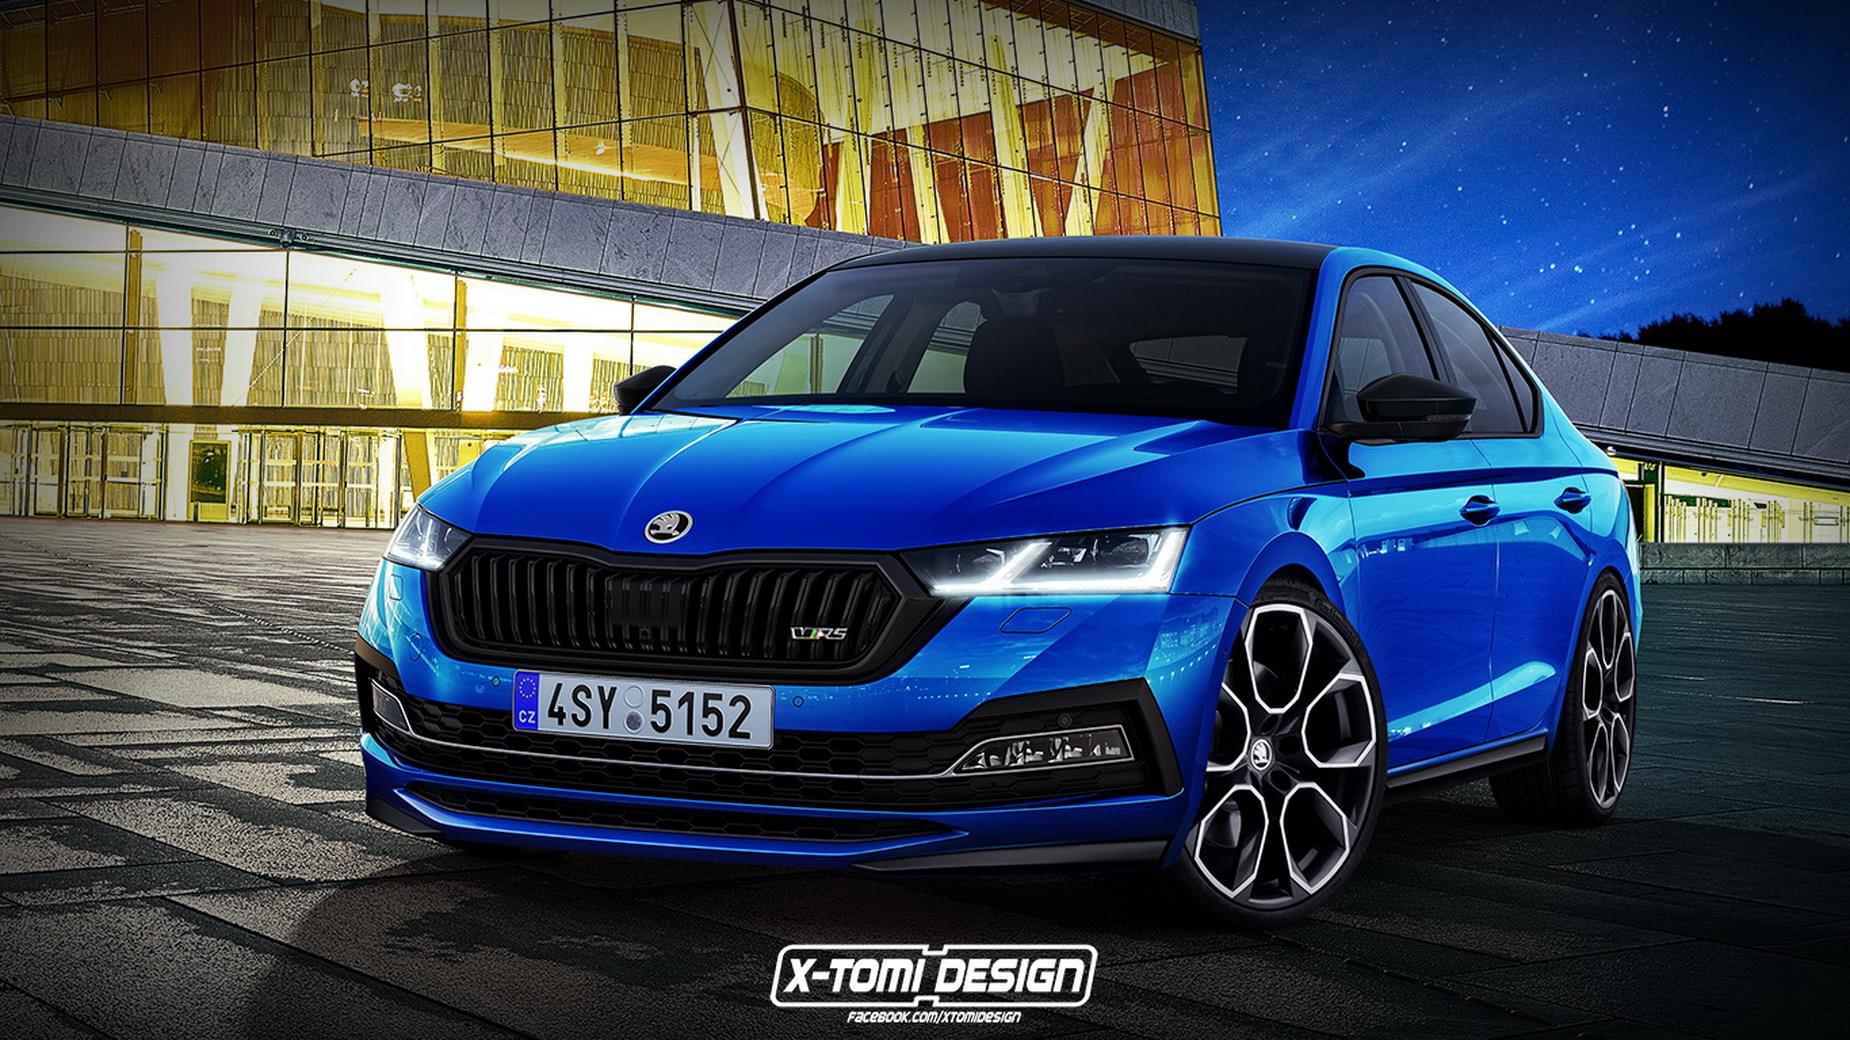 2020 Skoda Octavia Rs To Follow Cupra Leon S Footsteps And Get A Plug In Hybrid Option Carscoops